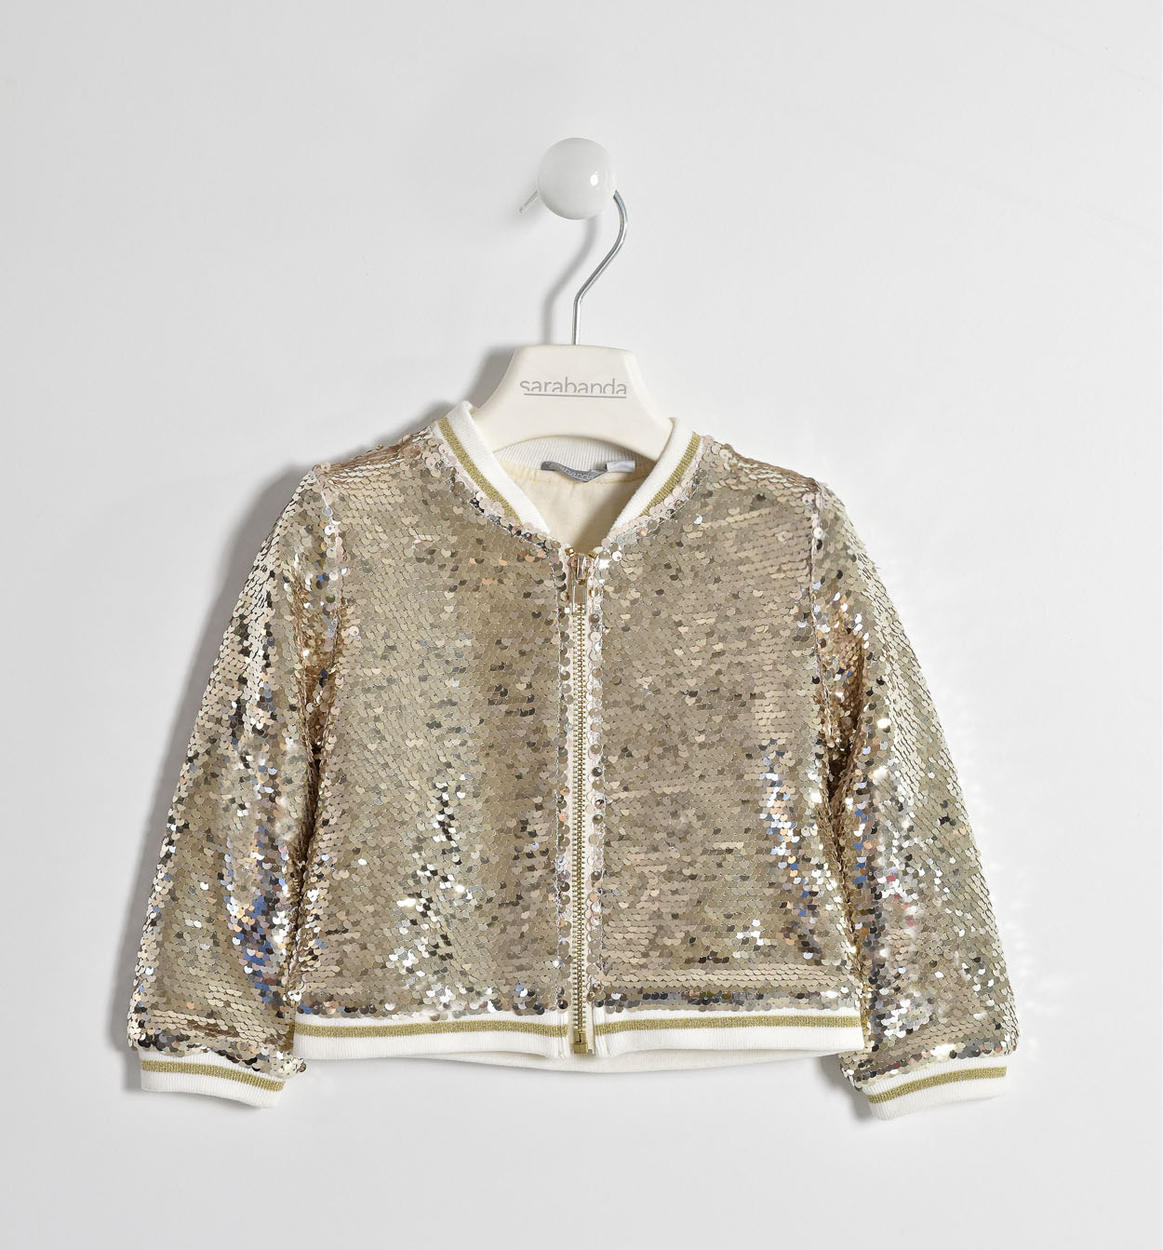 1eba473cd Sequin bomber jacket for baby girls from 6 months to 7 years Sarabanda  ORO-1154